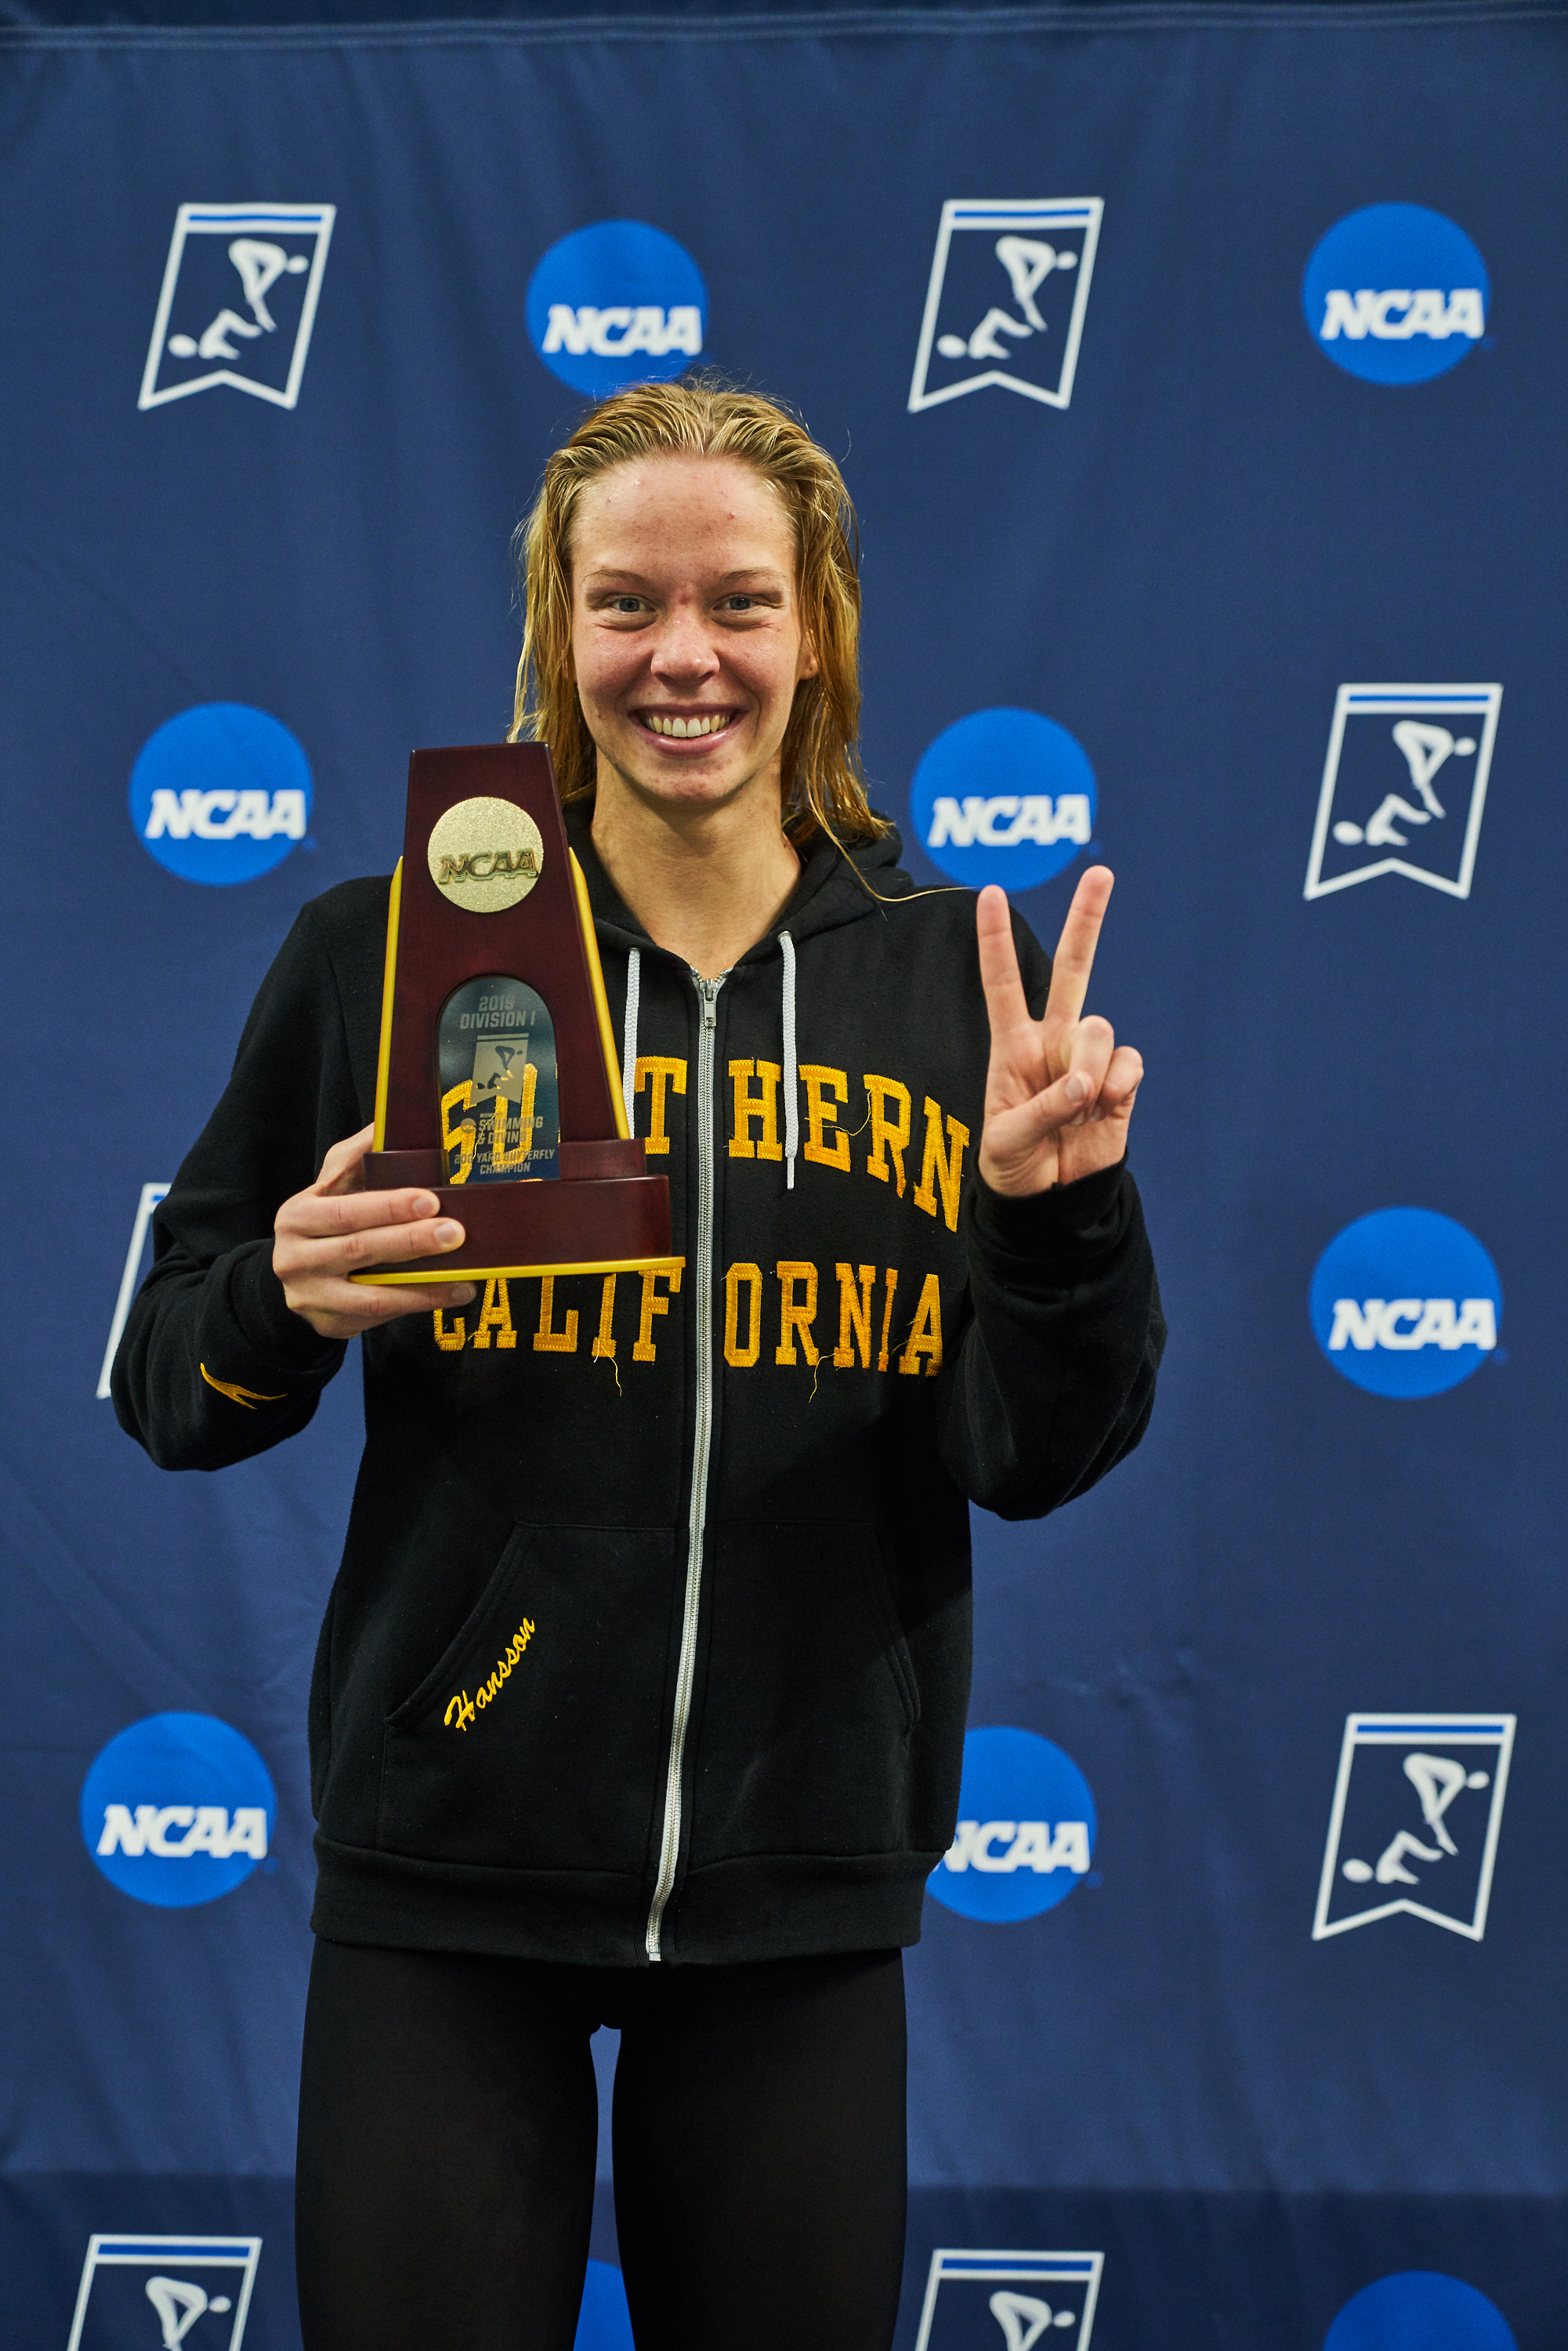 2019 NCAA Division I Women's Swimming and Diving Championship